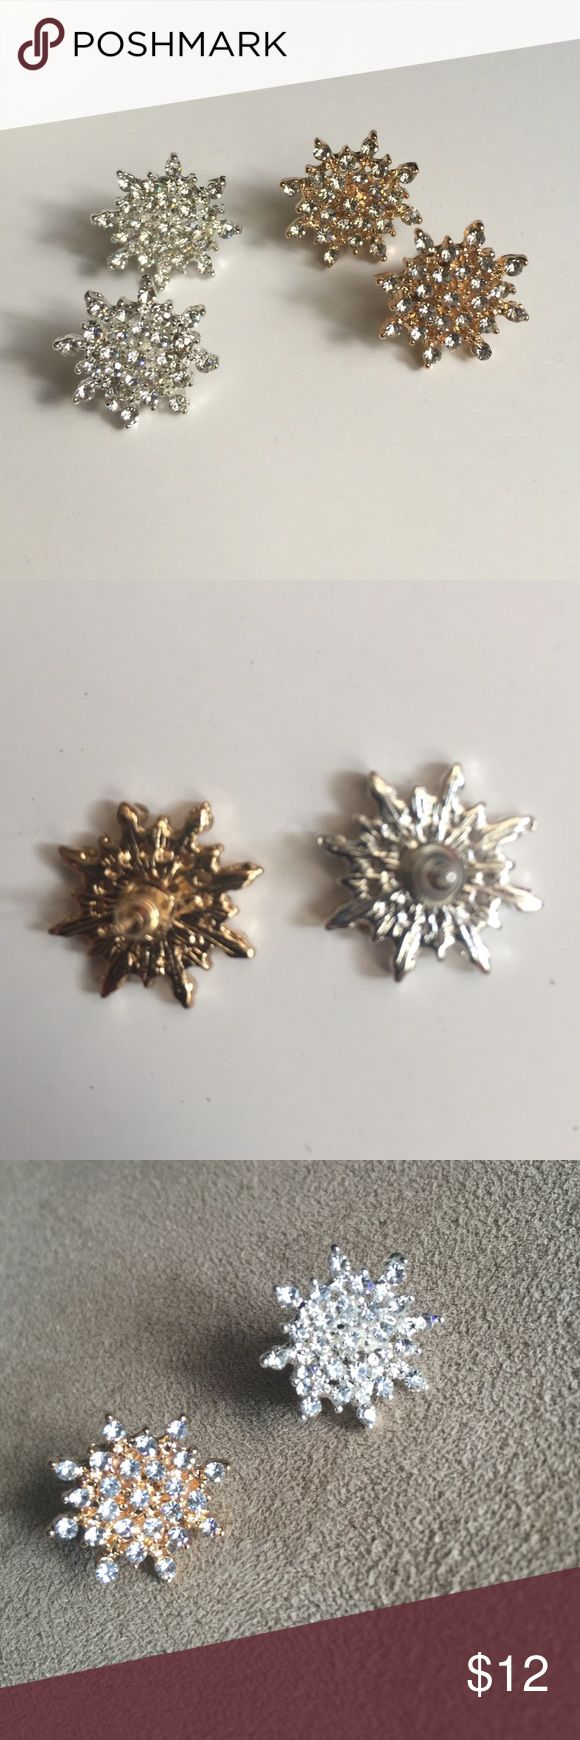 🆕NWOT Sparkly Snowflake Earrings GOLD or SILVER NWOT stunning! Your choice of silver or gold. Price firm unless bundled. Jewelry Earrings